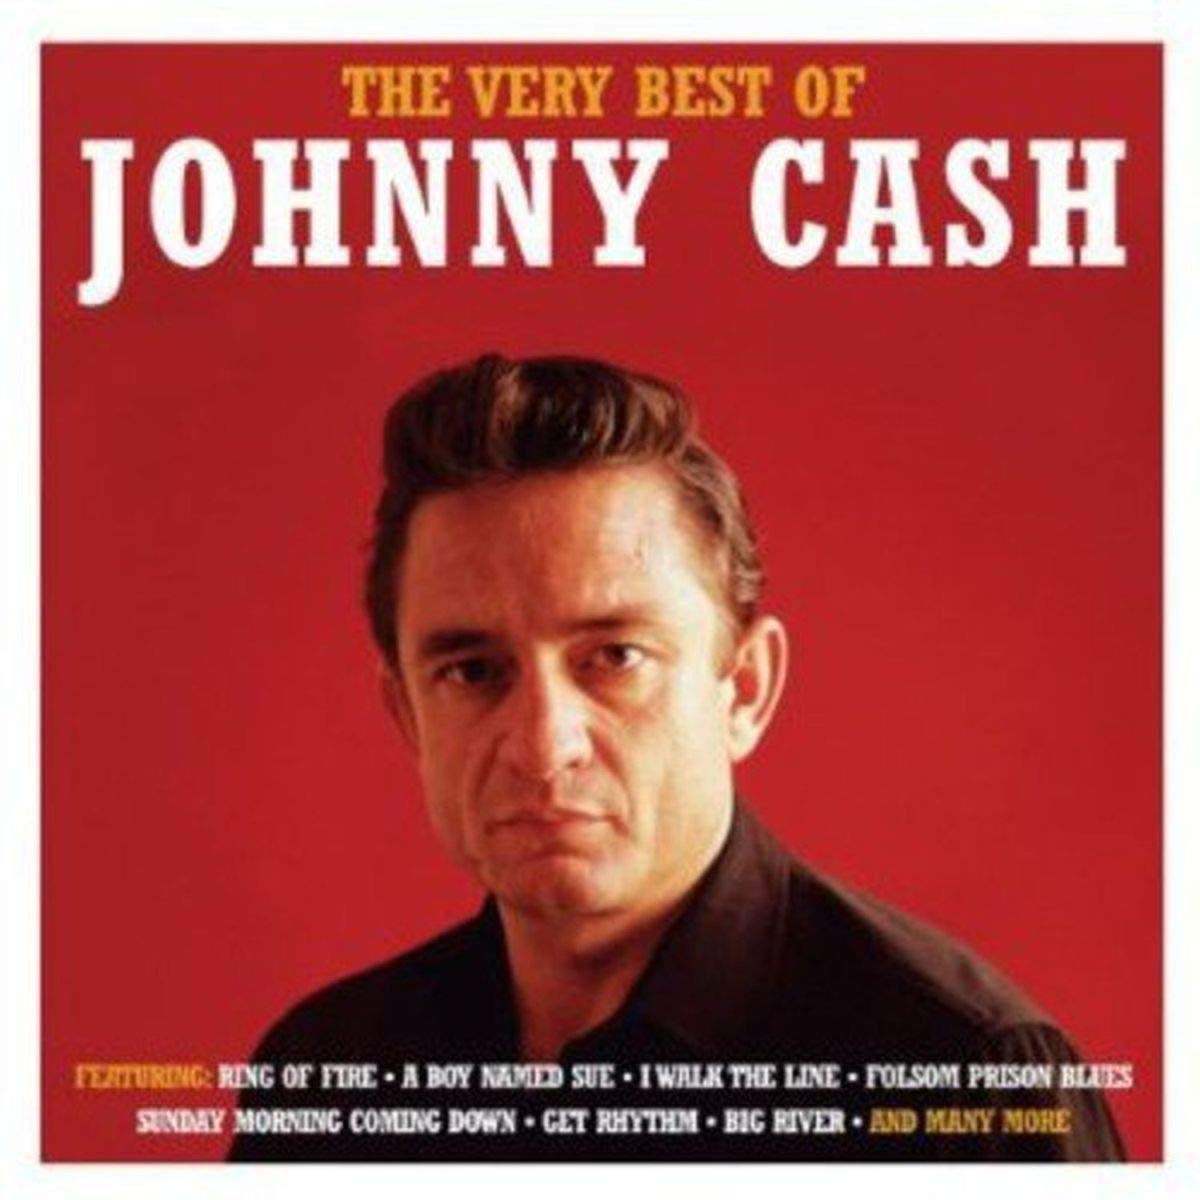 The Very Best of Johnny Cash by Not Now